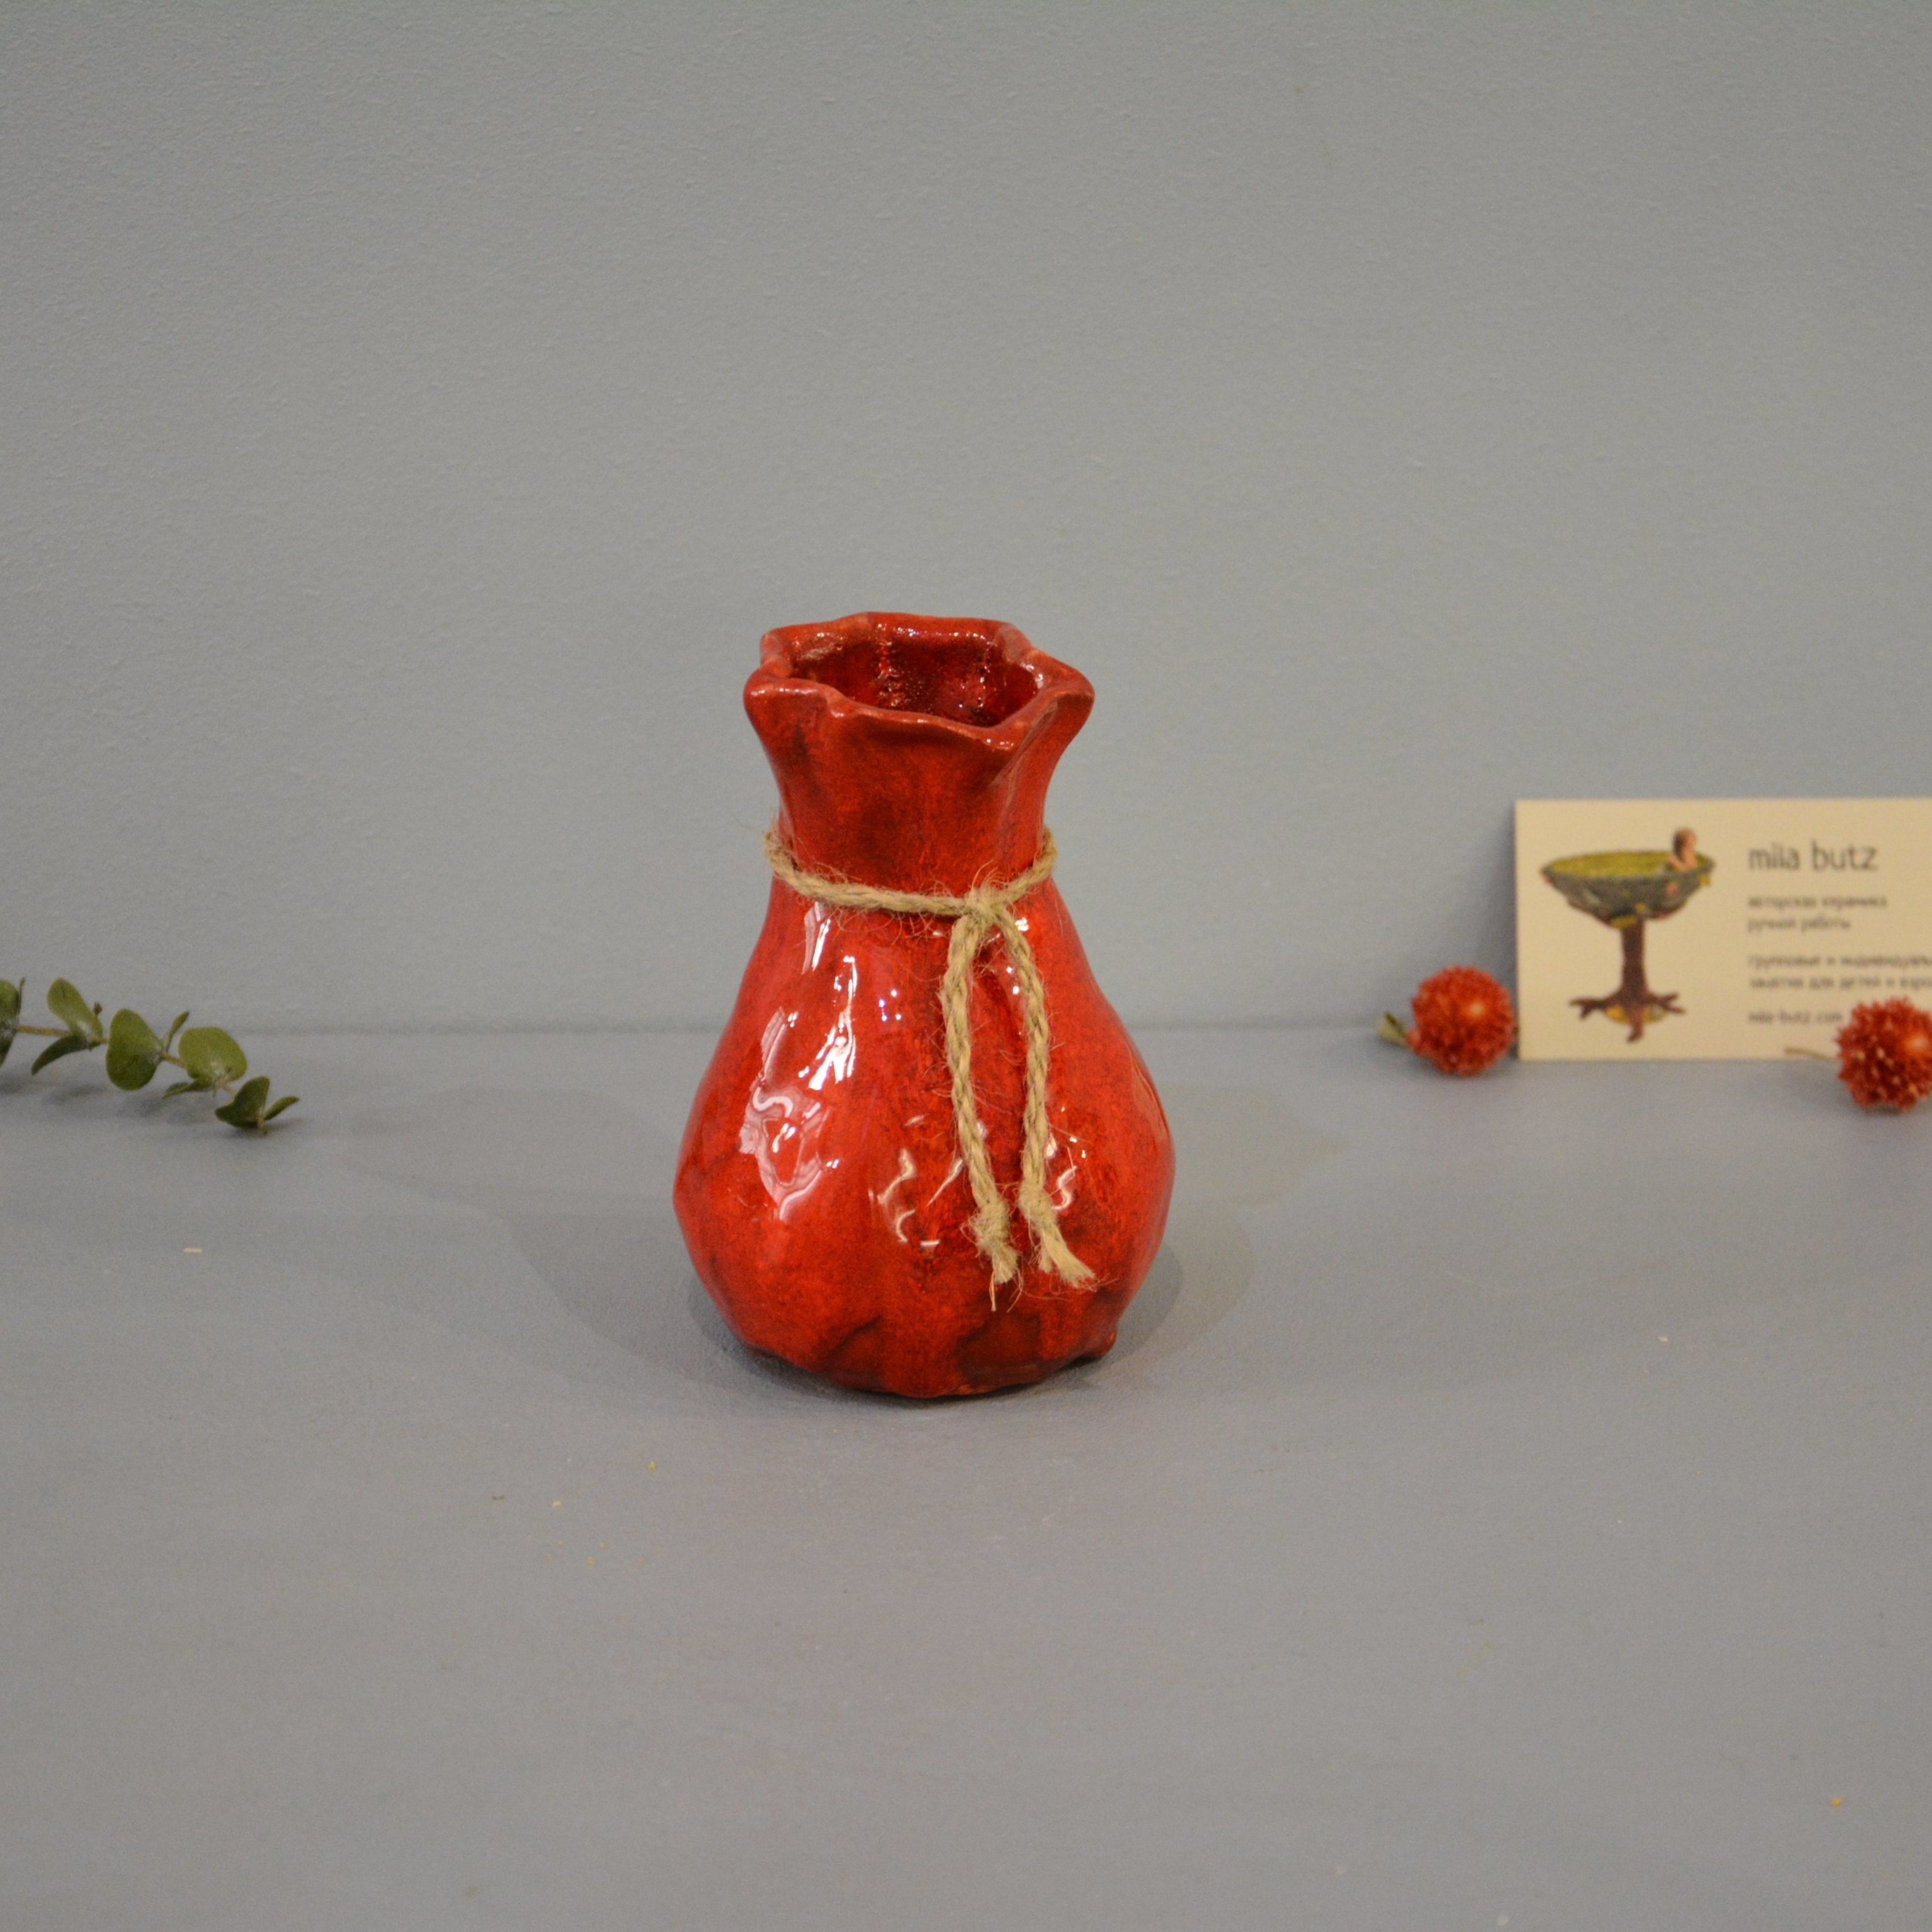 Small Vase or flowers «Red Bagful», height - 12 cm, color - red. Photo 1435-3840-3840.